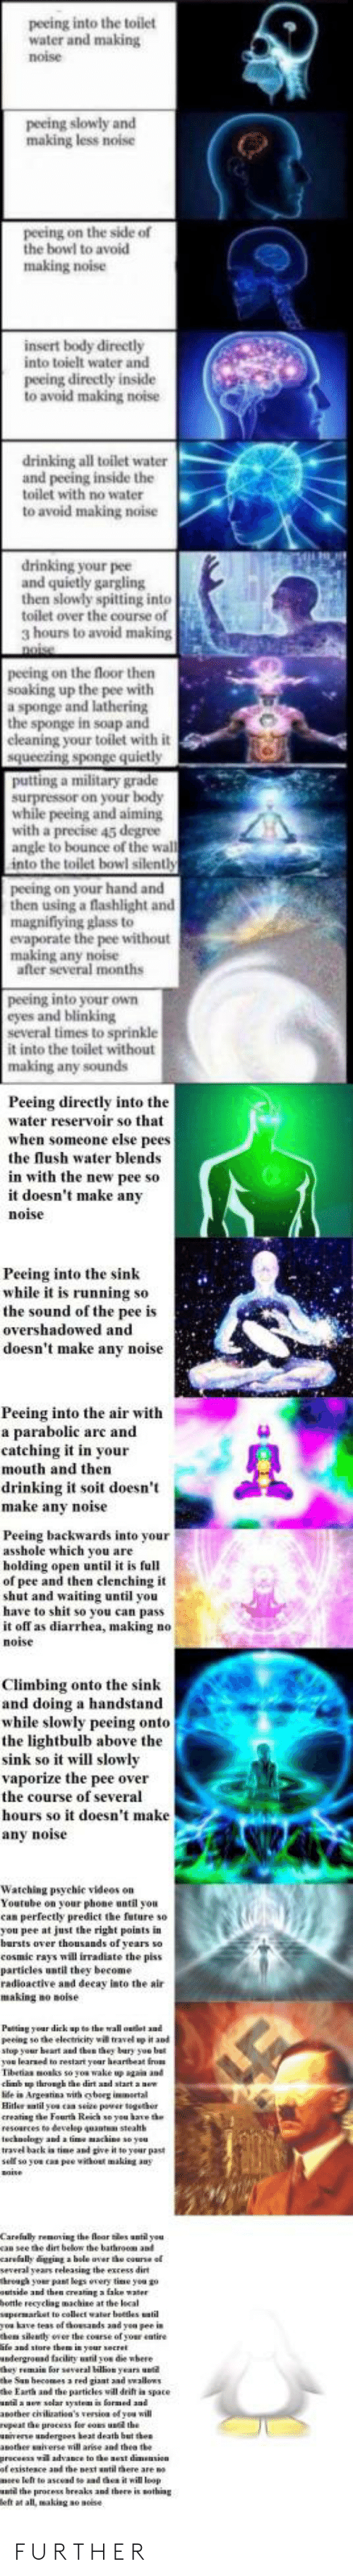 Climbing, Drinking, and Fake: peeing into the toilet  water and making  noise  peeing slowly and  making less noise  peeing on the side of  the bowl to avoid  making noise  insert body directly  into toielt water and  peeing directly inside  to avoid making noise  drinking all toilet water  and peeing inside the  toilet with no water  to avoid making noise  drinking your pee  and quietly gargling  then slowly spitting into  toilet over the course of  3 hours to avoid making  peeing on the floor then  soaking up the pee with  a sponge and lathering  the sponge in soap and  cleaning your toilet with it  a military grade  while peeing and aiming  with a precise 45 degree  angle to bounce of the wal  into the toilet bowl silenth  peeing on your hand and  then using a flashlight and  magnifiying glass to  evaporate the pee without  making any noise  after several months  peeing into your oWn  eyes and blinking  several times to sprinkle  it into the toilet without  making any sounds  Peeing directly into the  water reservoir so that  when someone else pees  the lush water blends  in with the new pee so  it doesn't make any  noi  Peeing into the sink  while it is running so  the sound of the pee is  overshadowed and  doesn't make any noise  Peeing into the air with  a parabolic arc and  catching it in your  mouth and then  drinking t st doesn't  make anv noise  Peeing backwards into your  asshole which you are  holding open until it is full  of pee and then clenching it  shut and waiting until you  have to shit so you can pass  noise  Climbing onto the sink  and doing a handstand  while slowly peeing onto  the lightbulb above the  sink so it will slo  vaporize the pee over  the course of several  hours so it doesn't make  any noise  Watching psyehic videes on  Youtube on your phone until you  can perfectly predict the feture so  you pee at just the right points in  barsts over thousands of  cosmic rays will irradiate the piss  particles until they become  radioactive and 